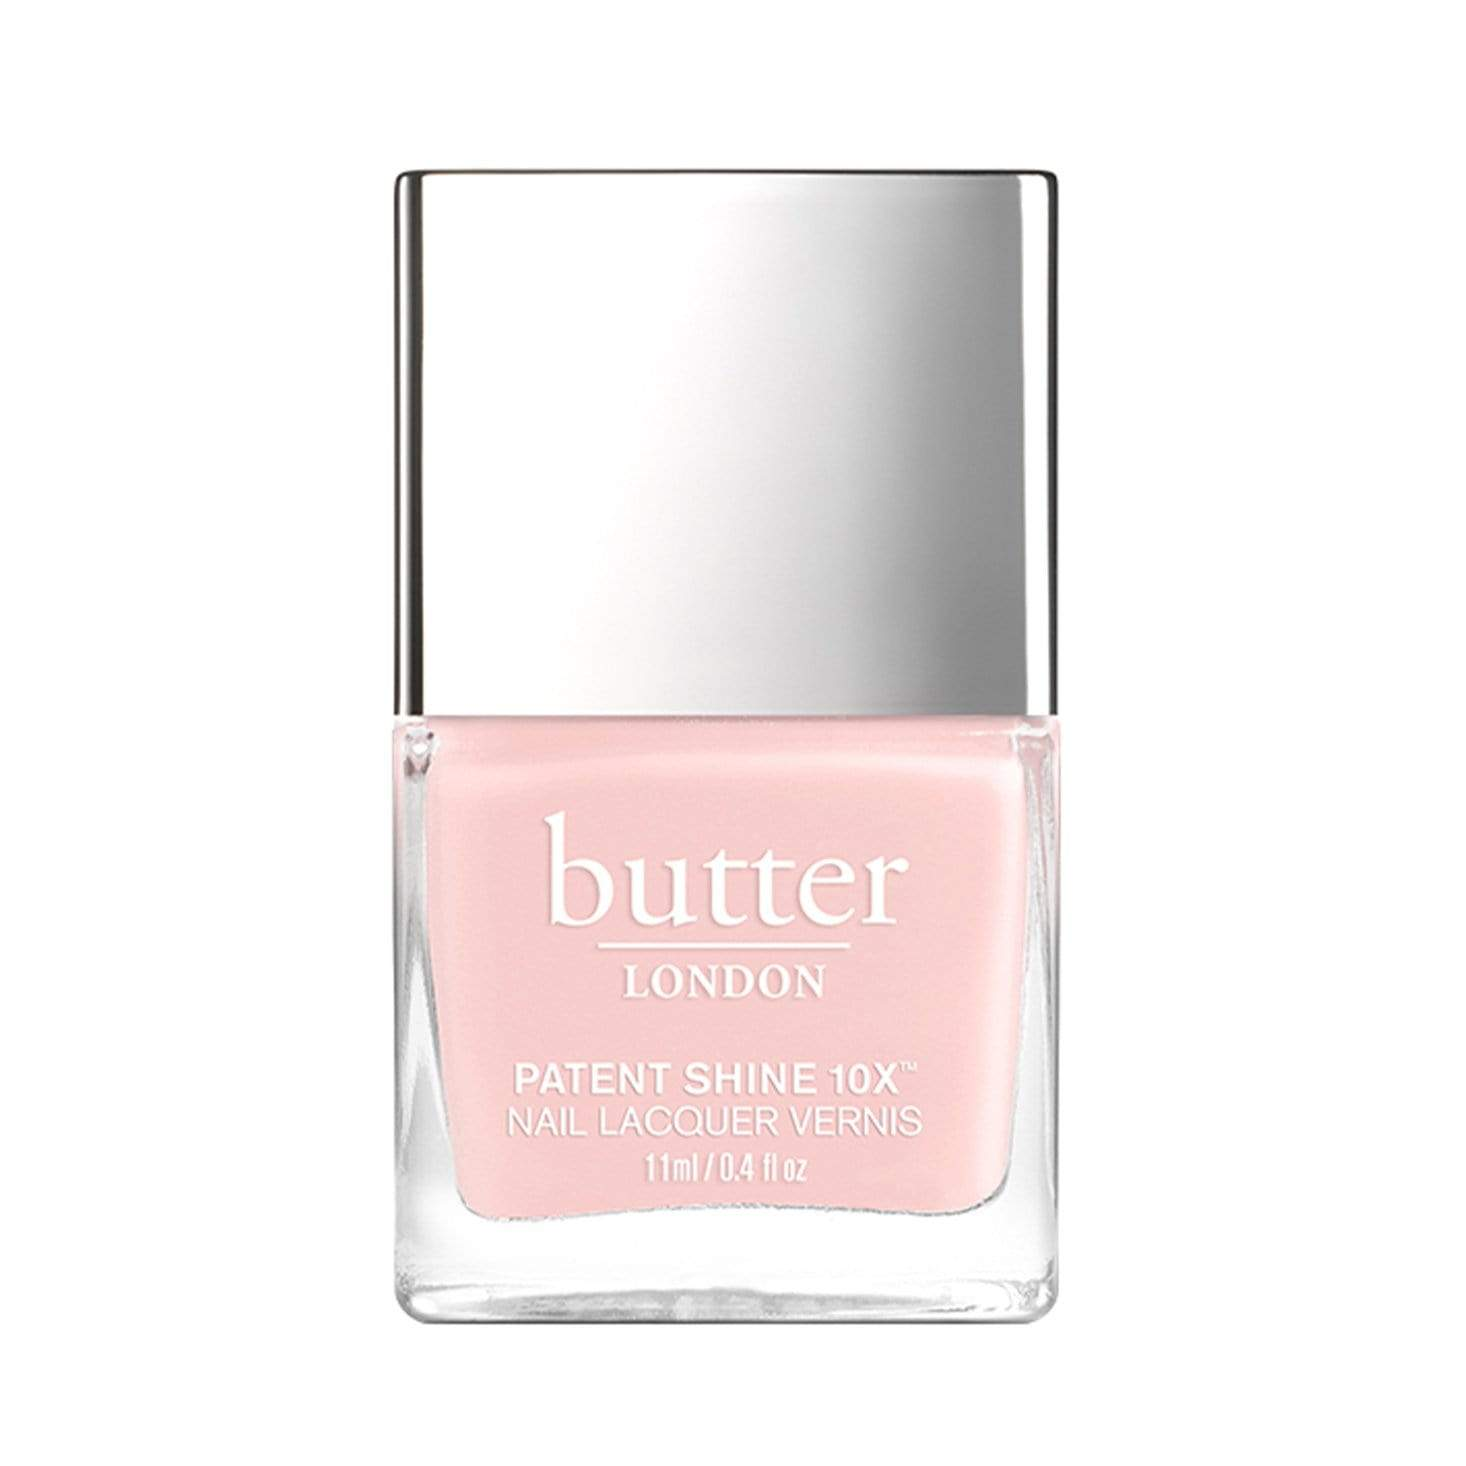 butter LONDON Piece of Cake Patent Shine 10X Nail Lacquer